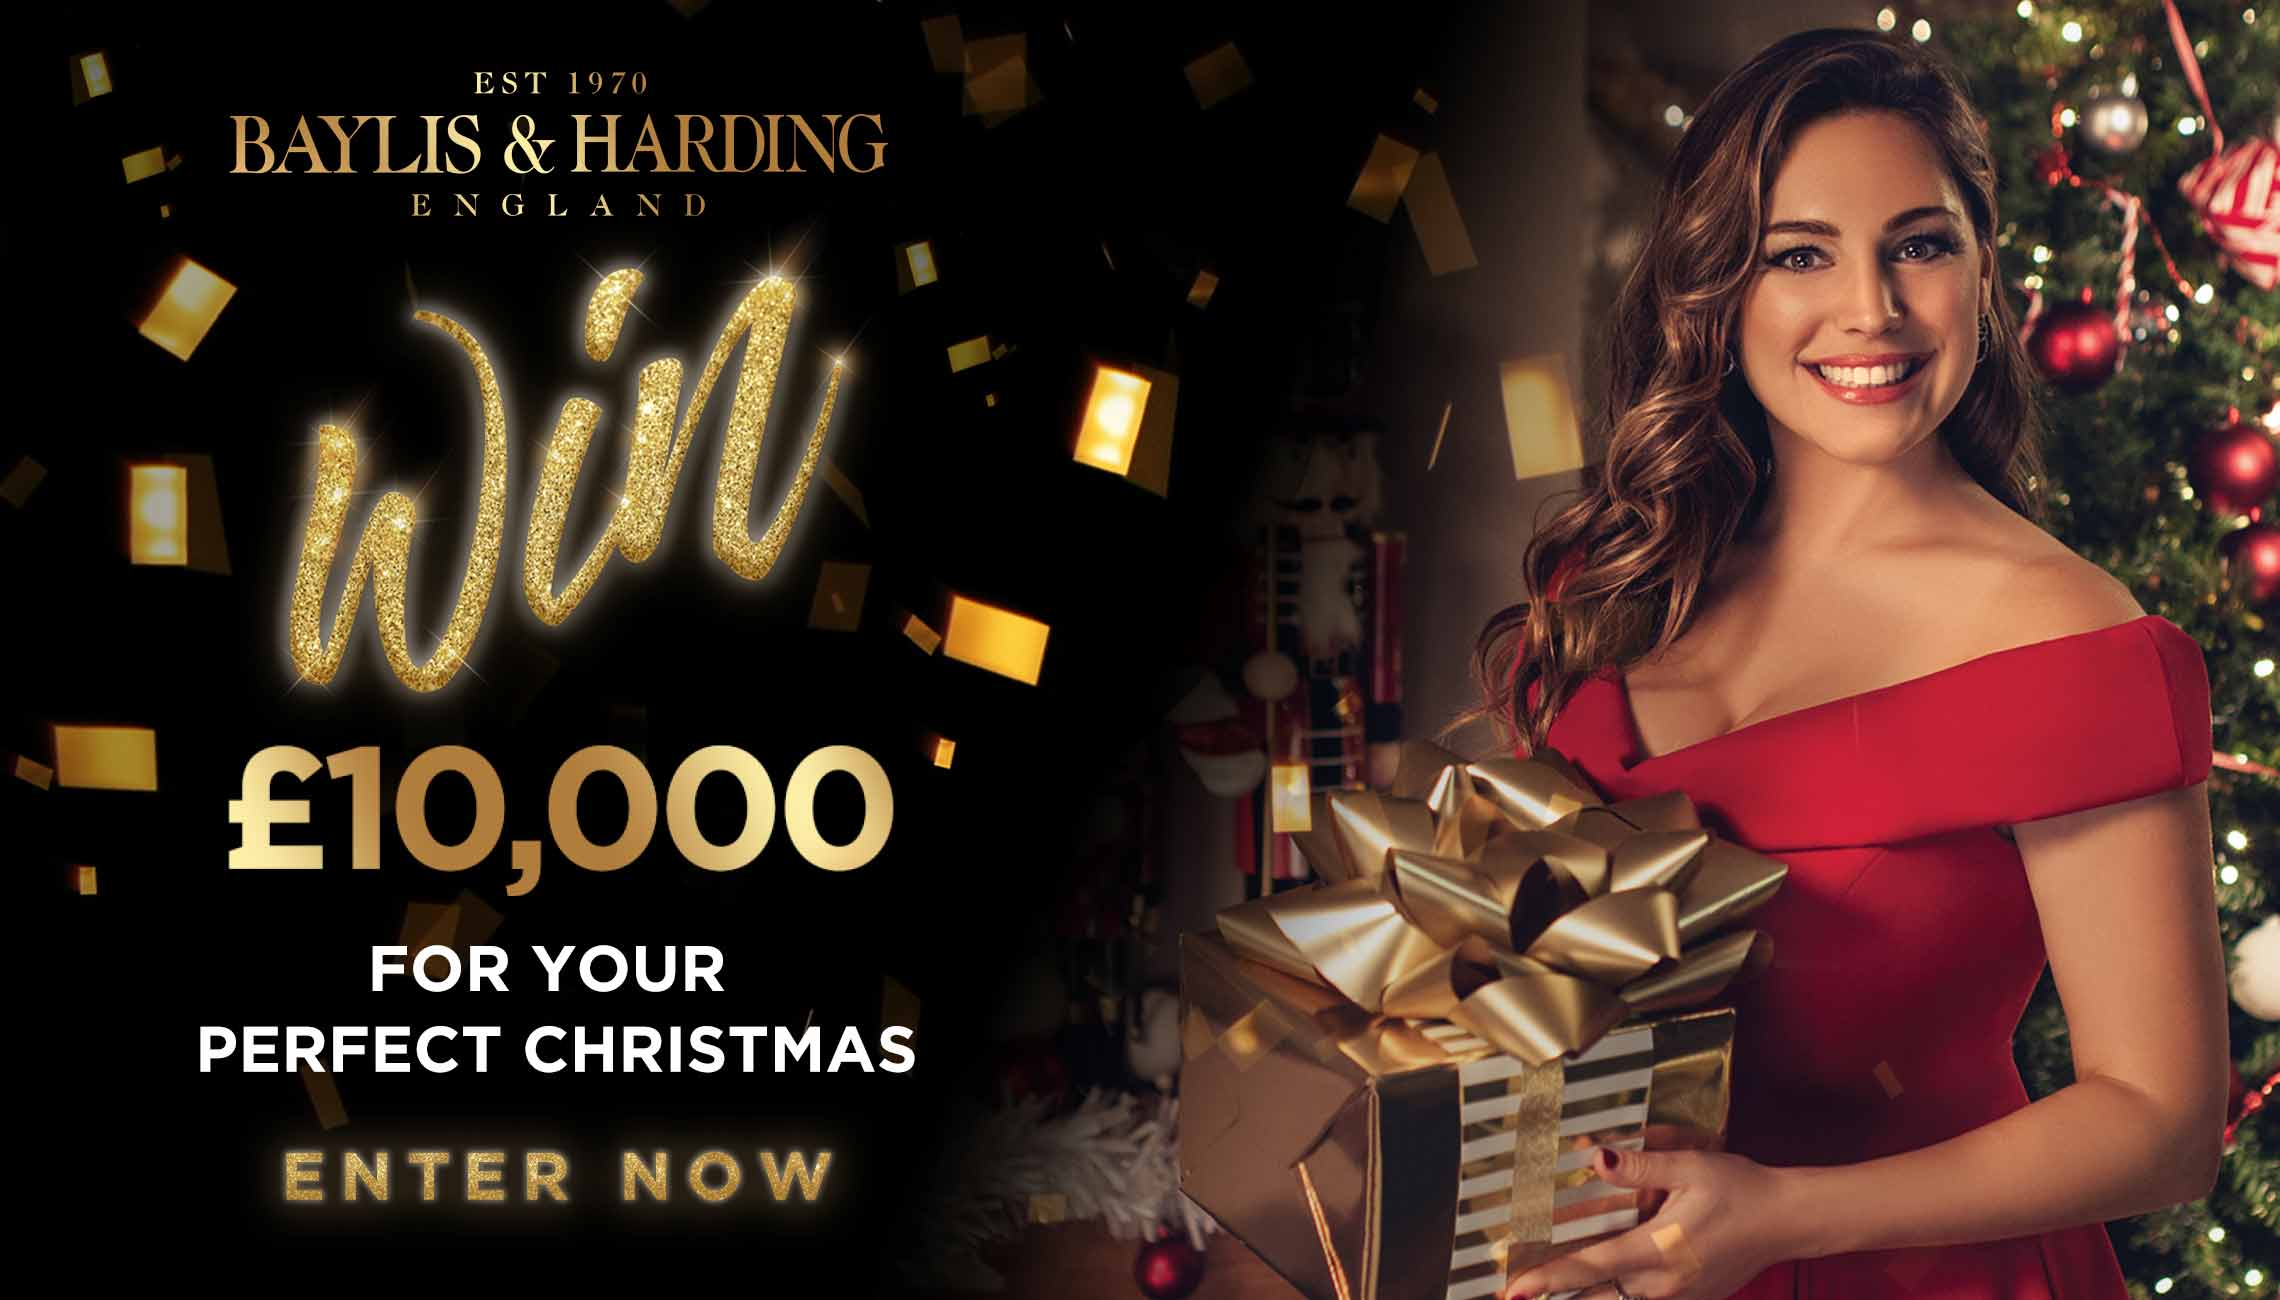 Win £10,000 for your perfect christmas - enter now